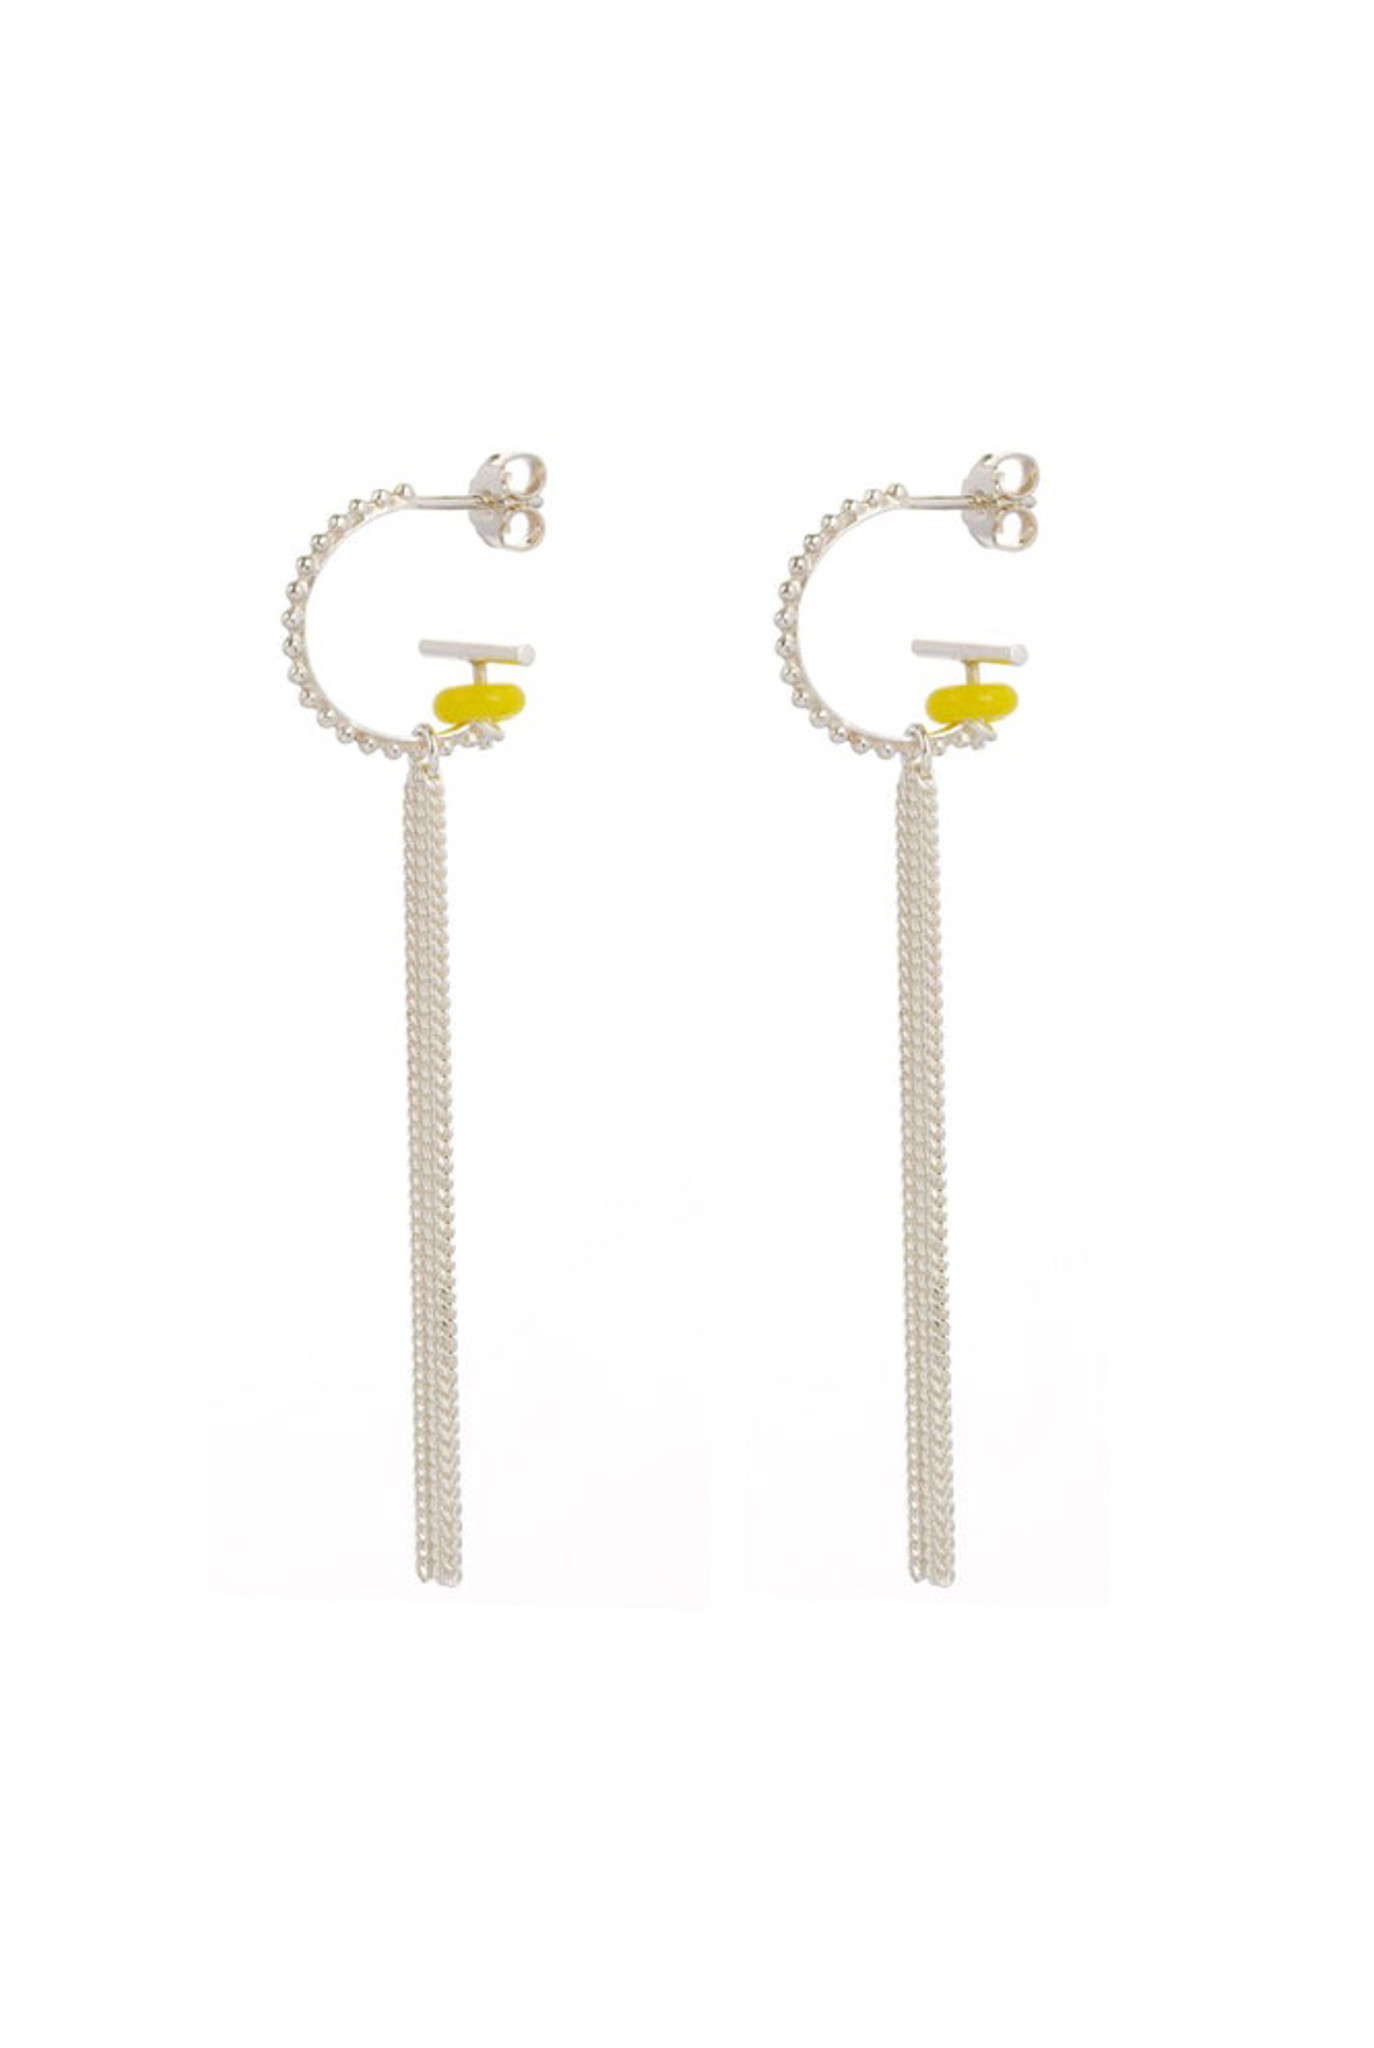 Hoop earrings with yellow glass bead and fringe